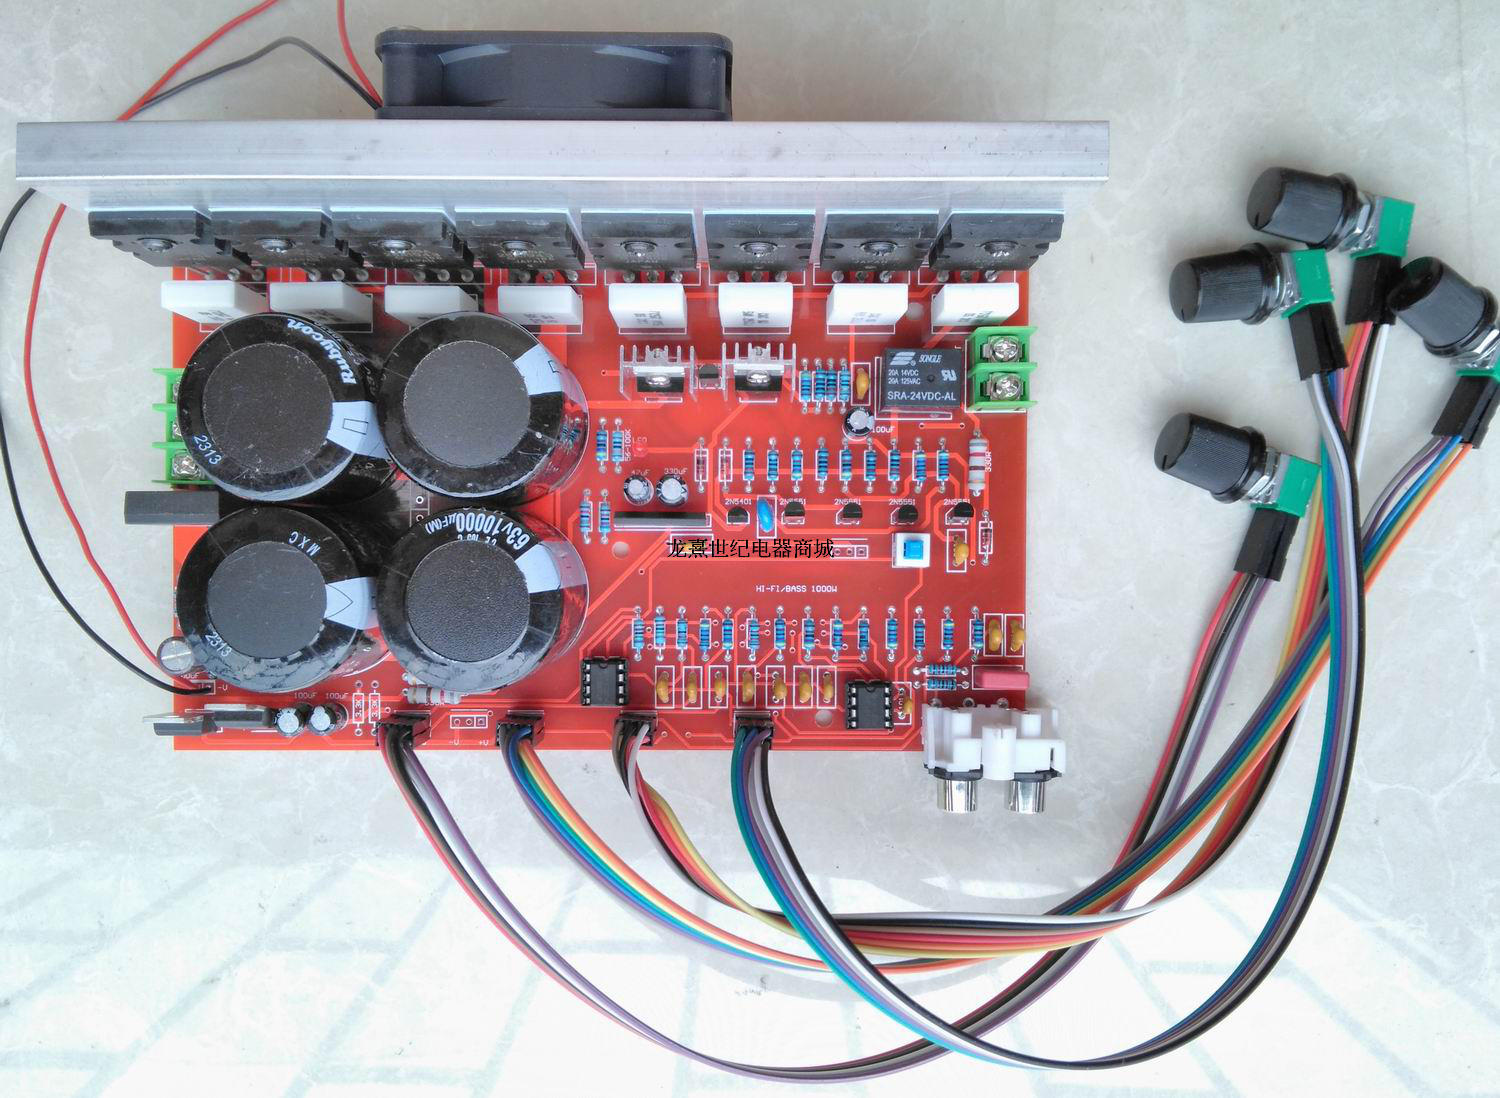 1000W mono or subwoofer 2-in-1 amplifier circuit board TTC5200